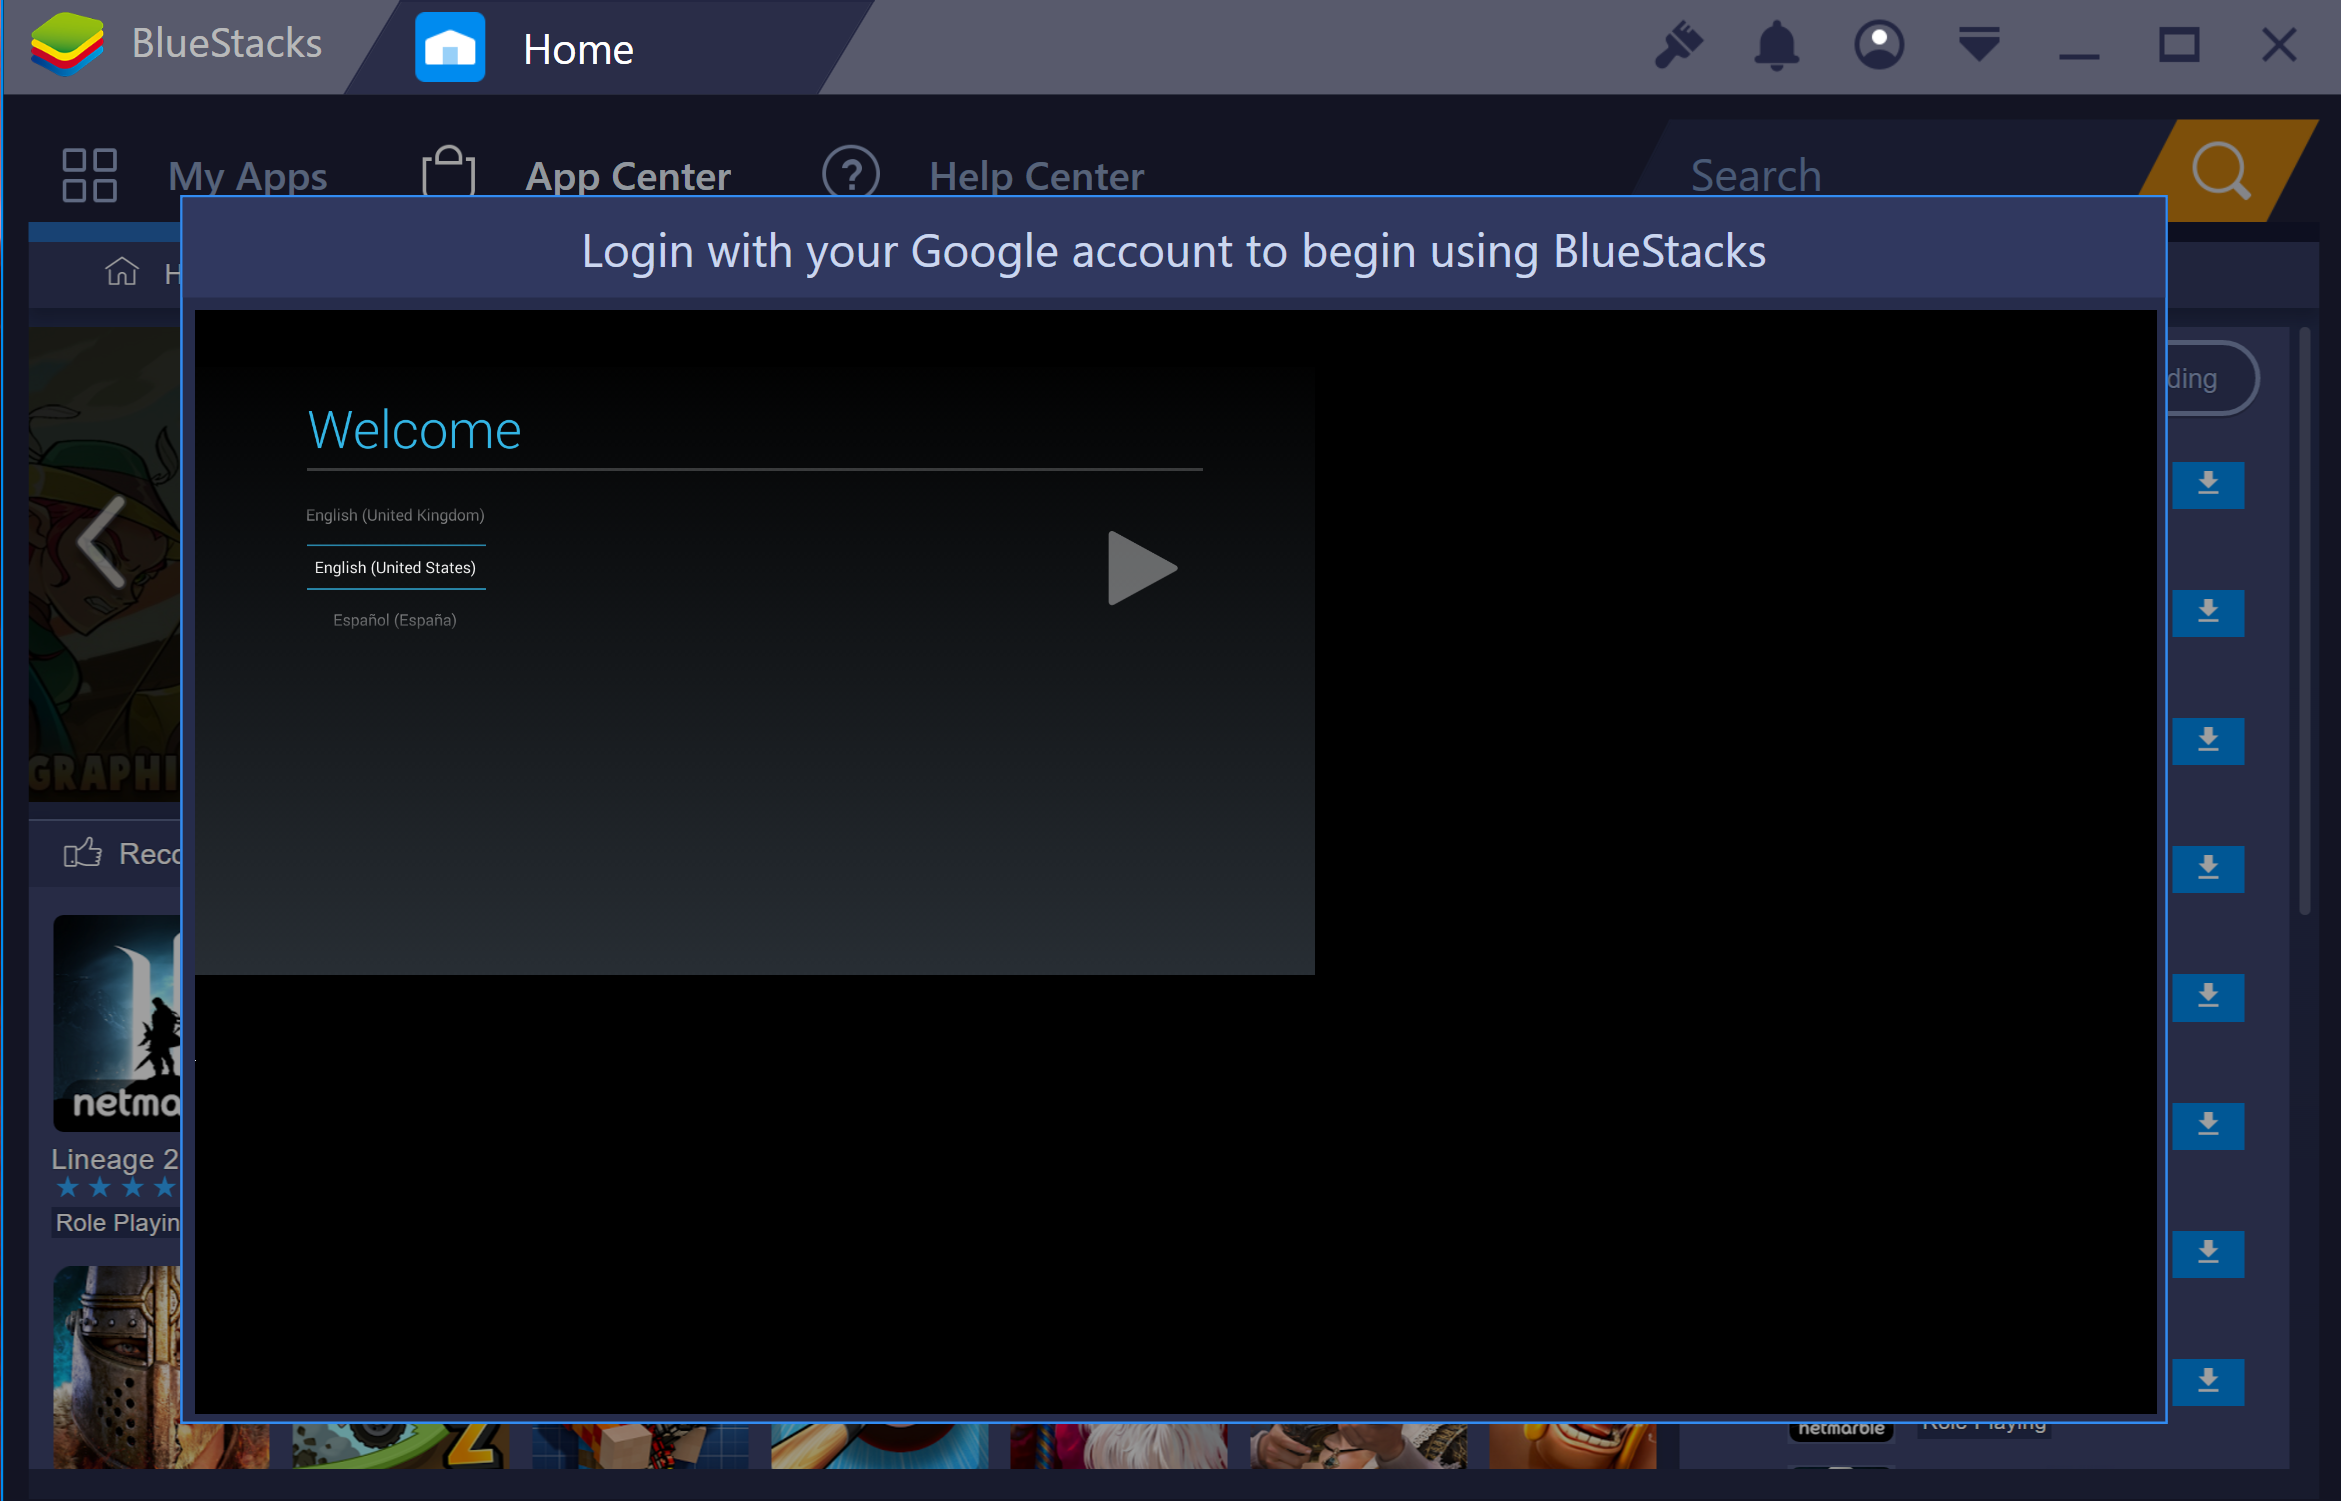 Troubleshooting Google login issues – BlueStacks Support